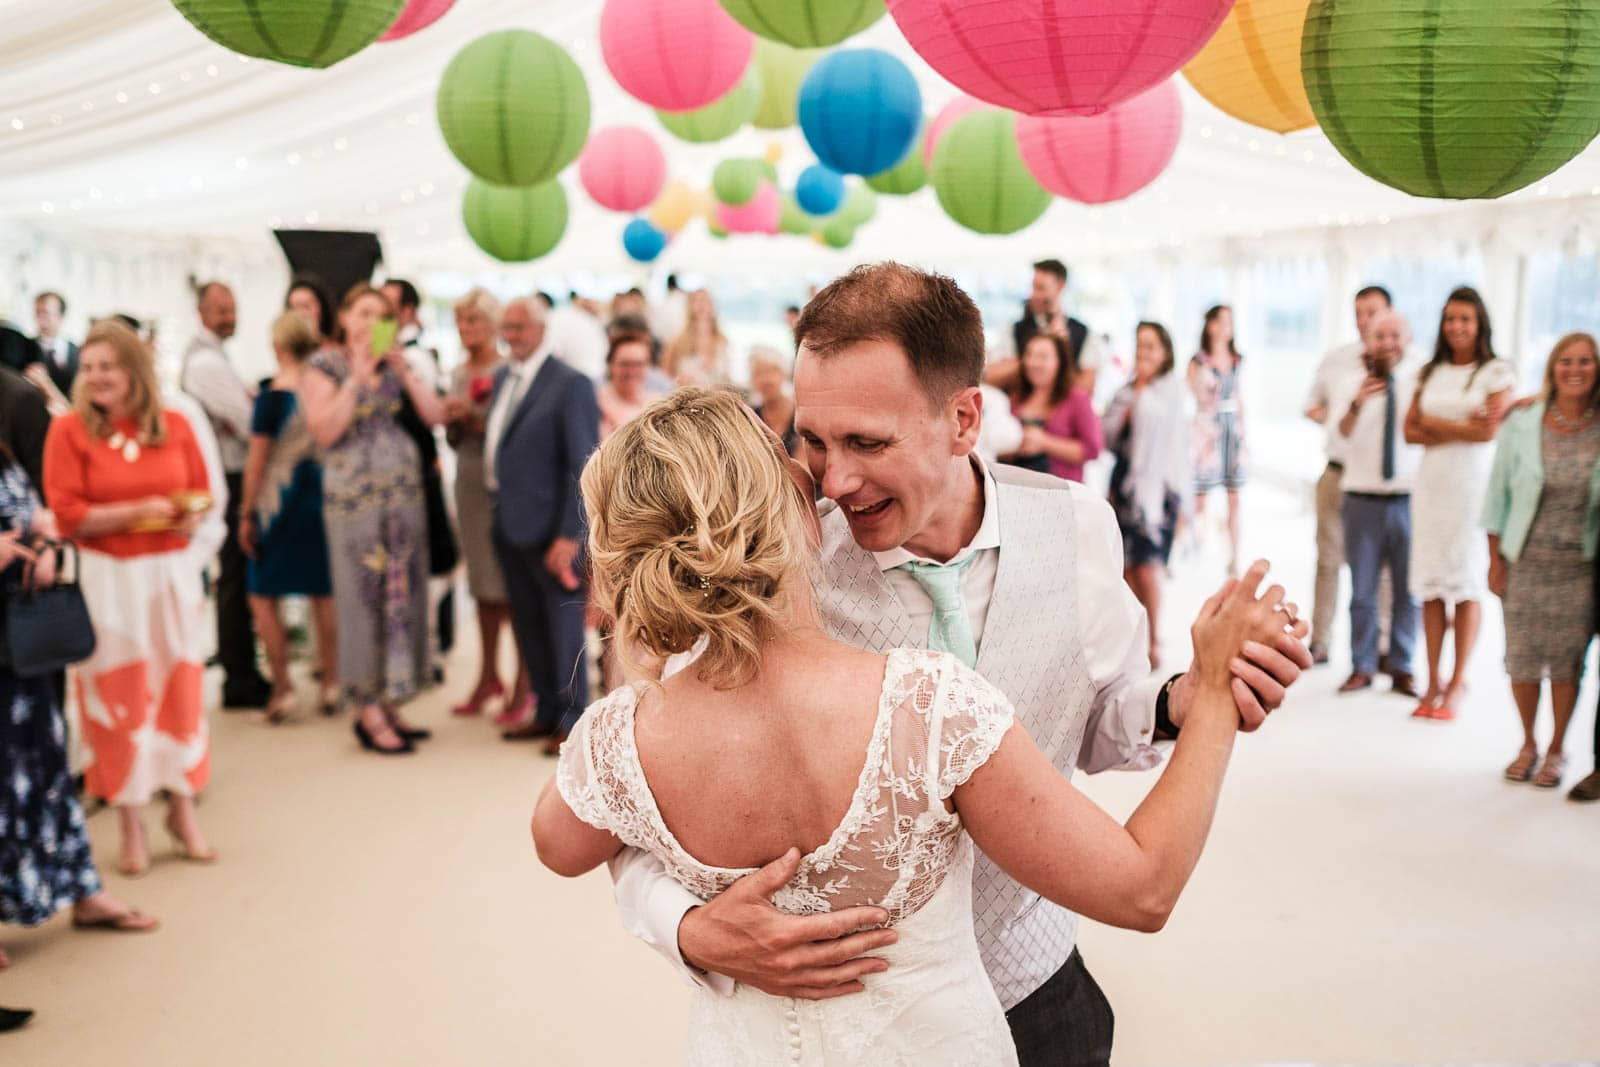 First dance at a wedding in St Mawes